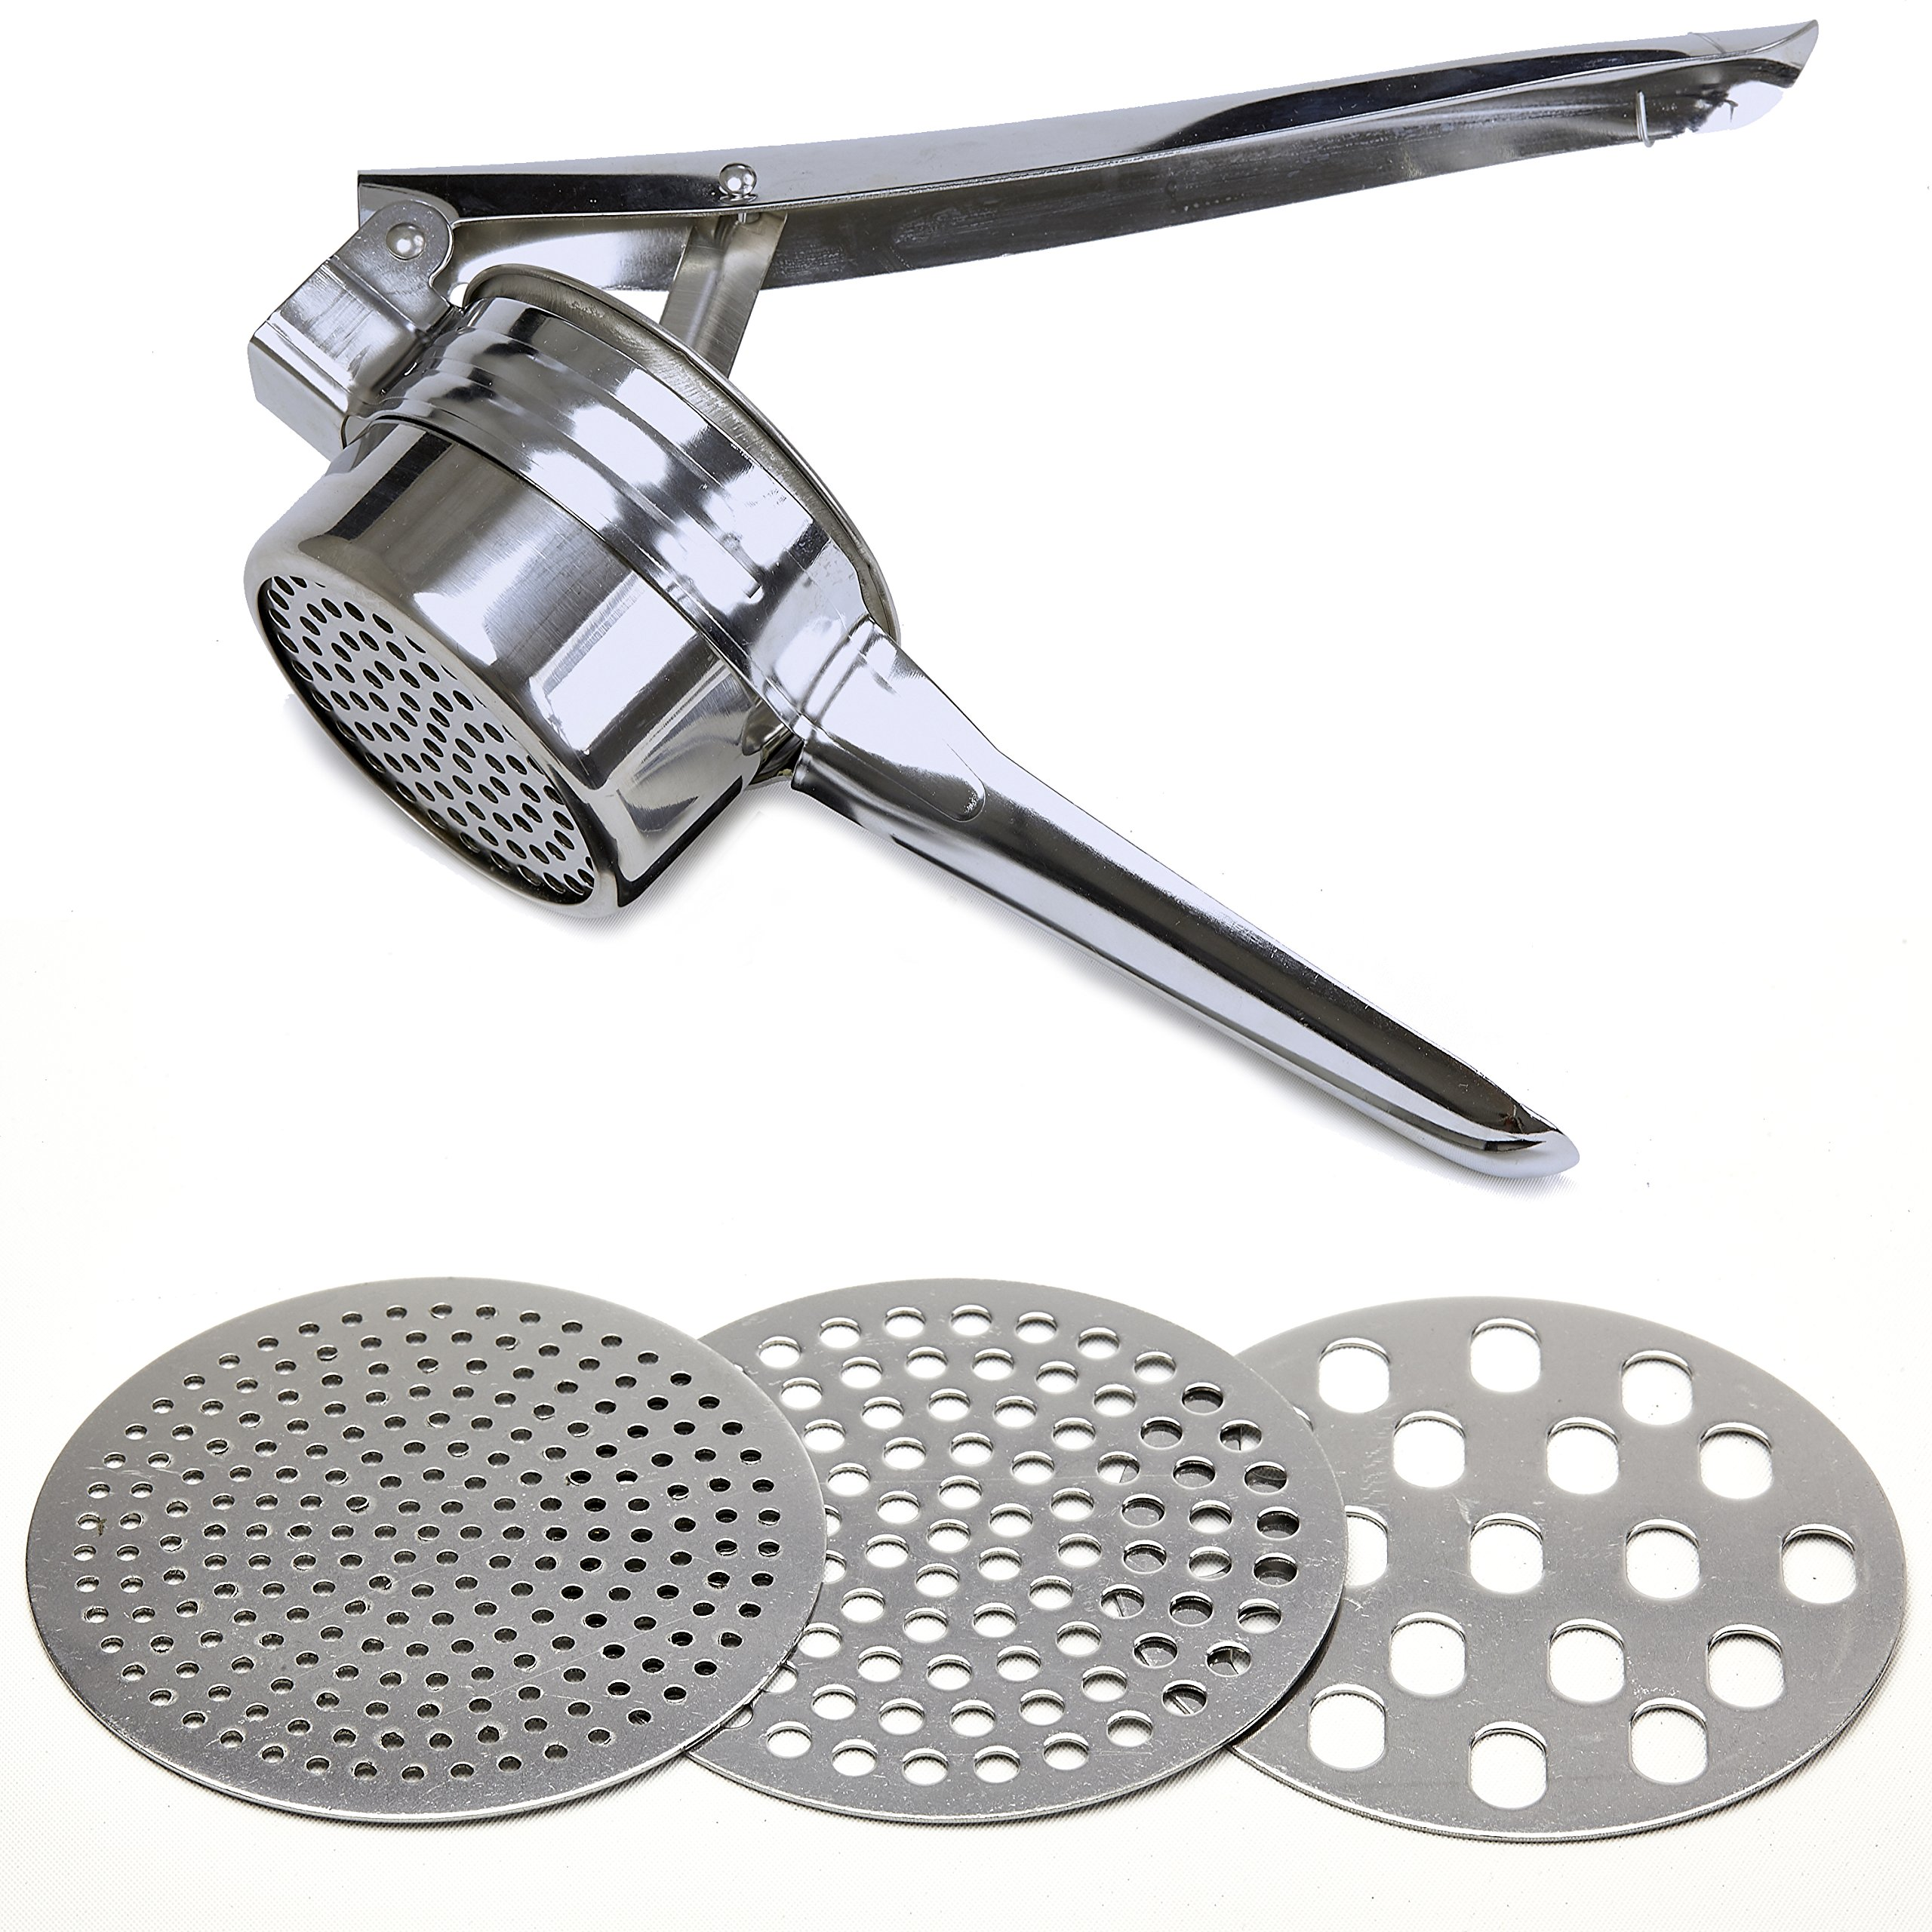 Stainless Steel Potato Ricer - Manual Masher for Potatoes, Fruits, Vegetables, Yams, Squash, Baby Food and More - 3 Interchangeable Discs for Fine, Medium, and Coarse, Easy To Use - by Tundras by Tundras